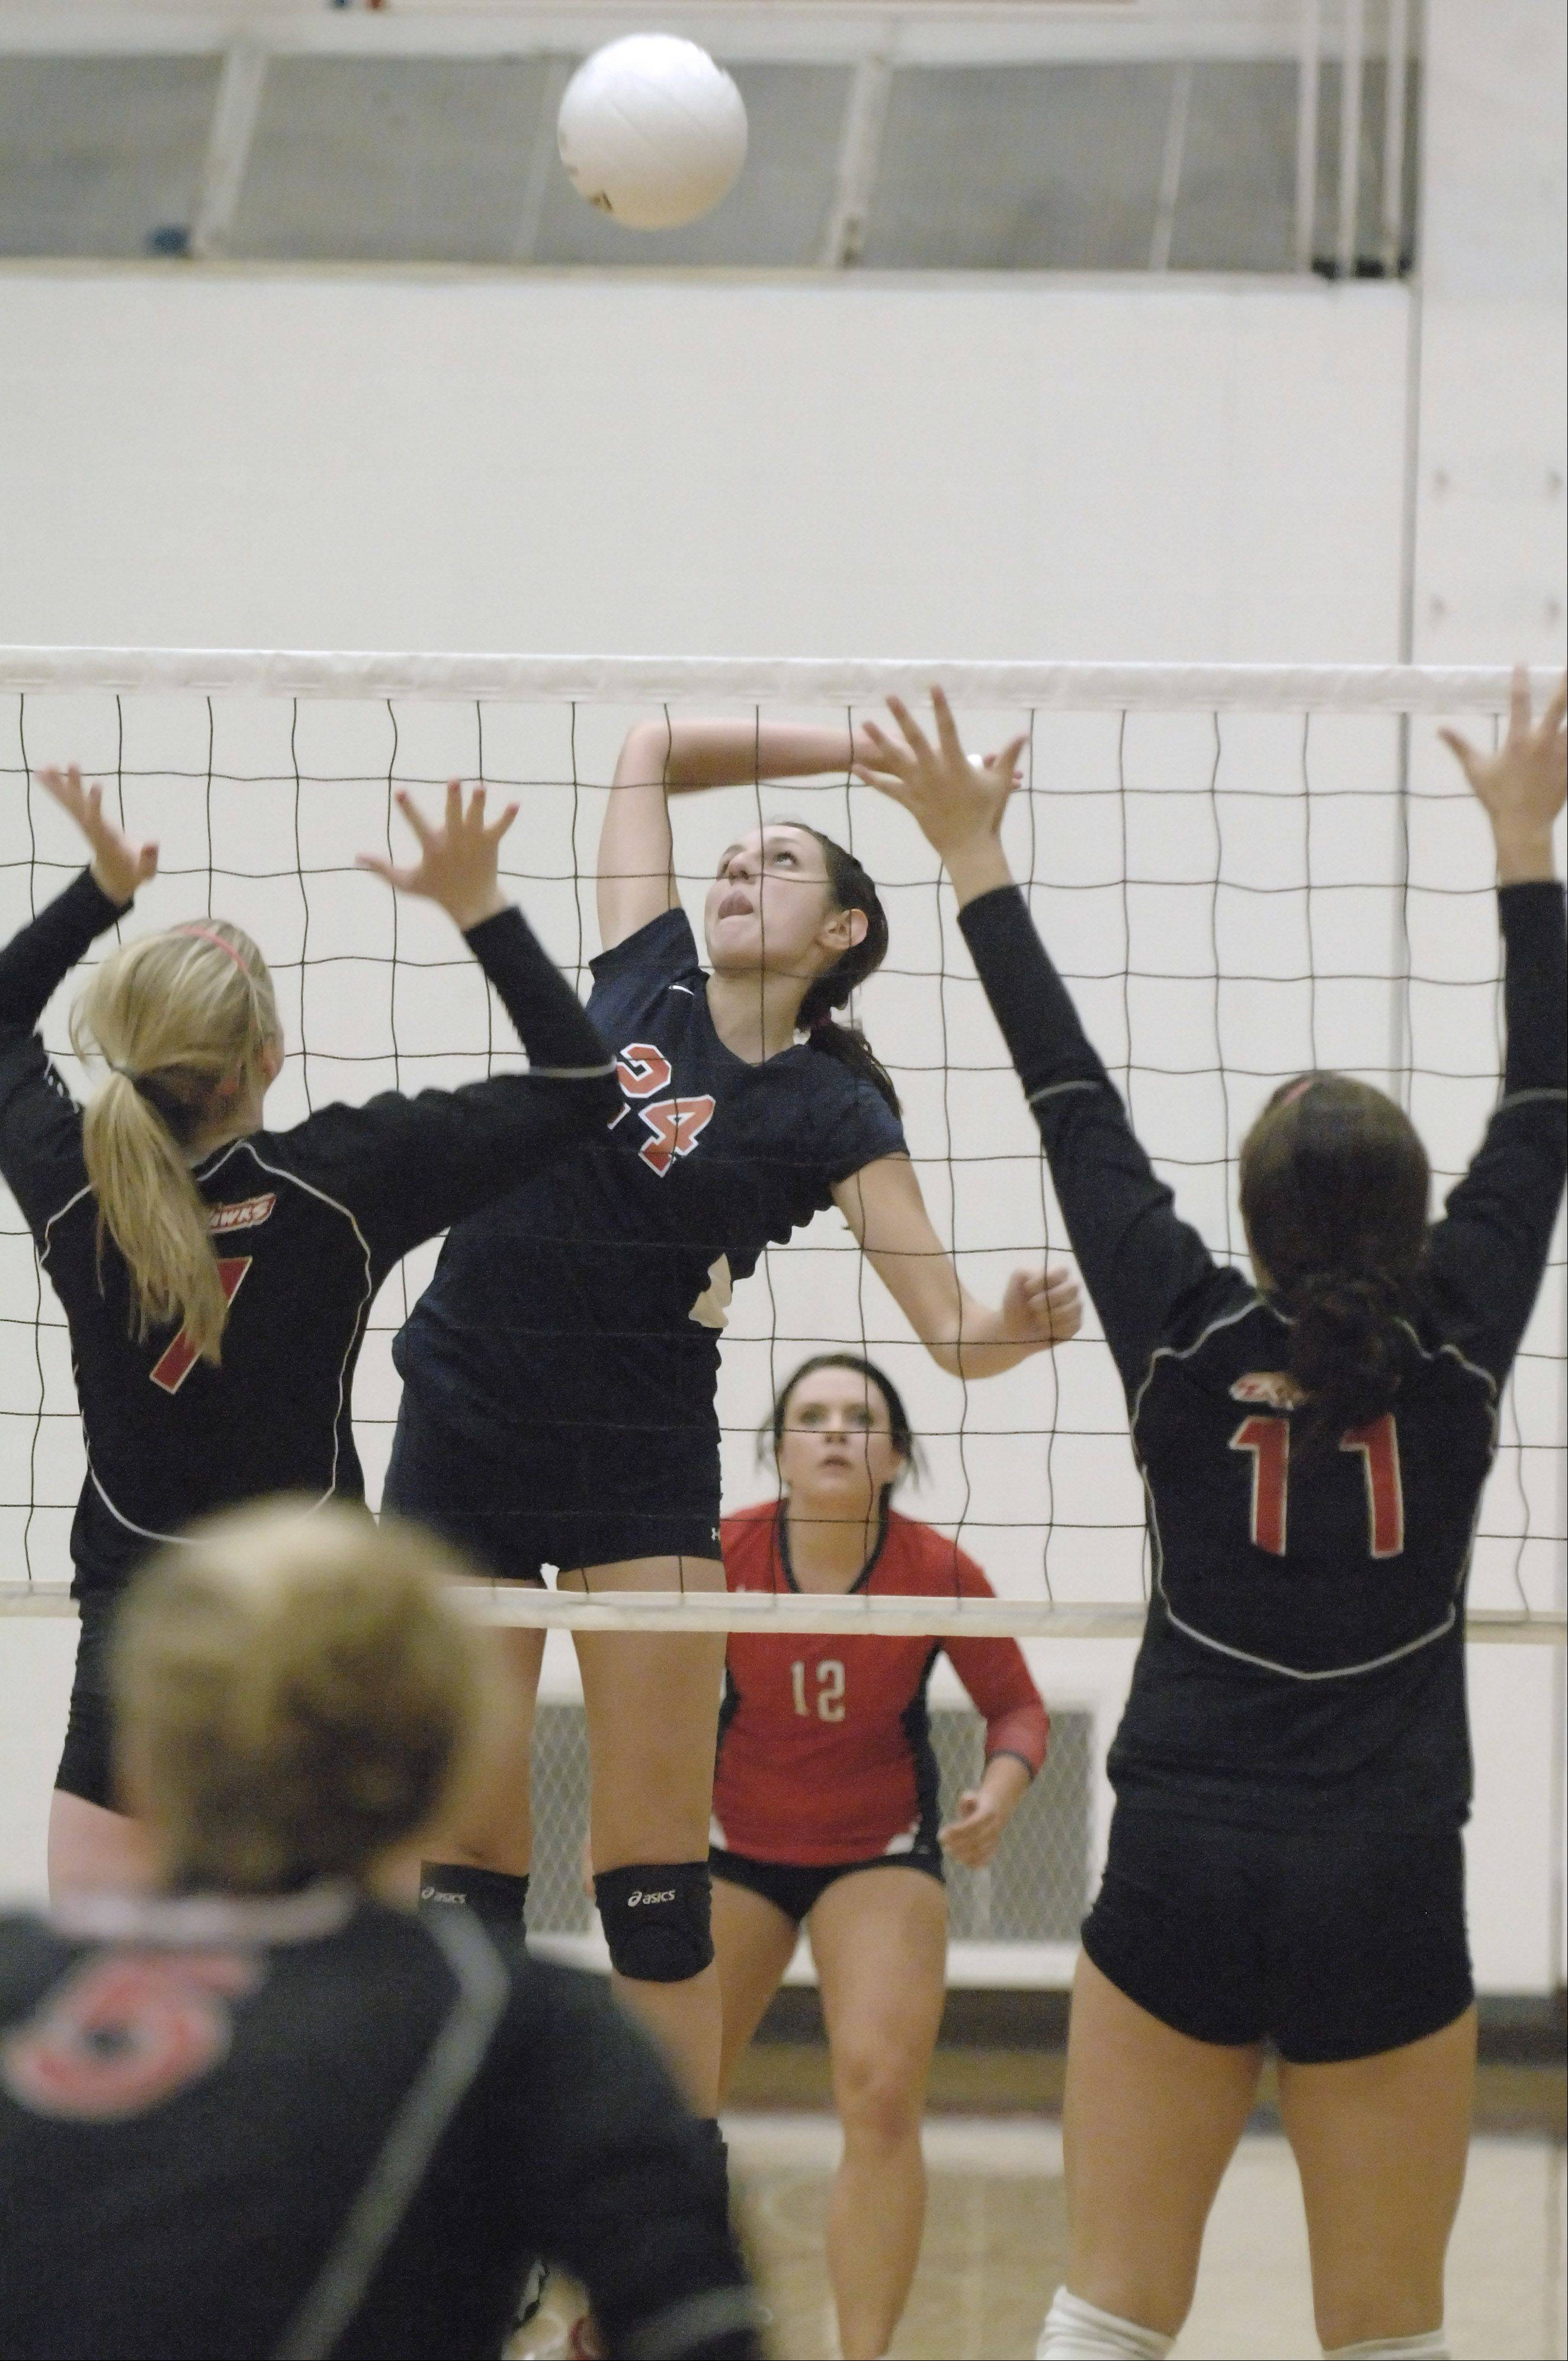 West Aurora's Lauren Wilson winds up for a spike over to Naperville Central's Nikki Connors and Maddie Slambekos in the first game on Thursday, September 8.